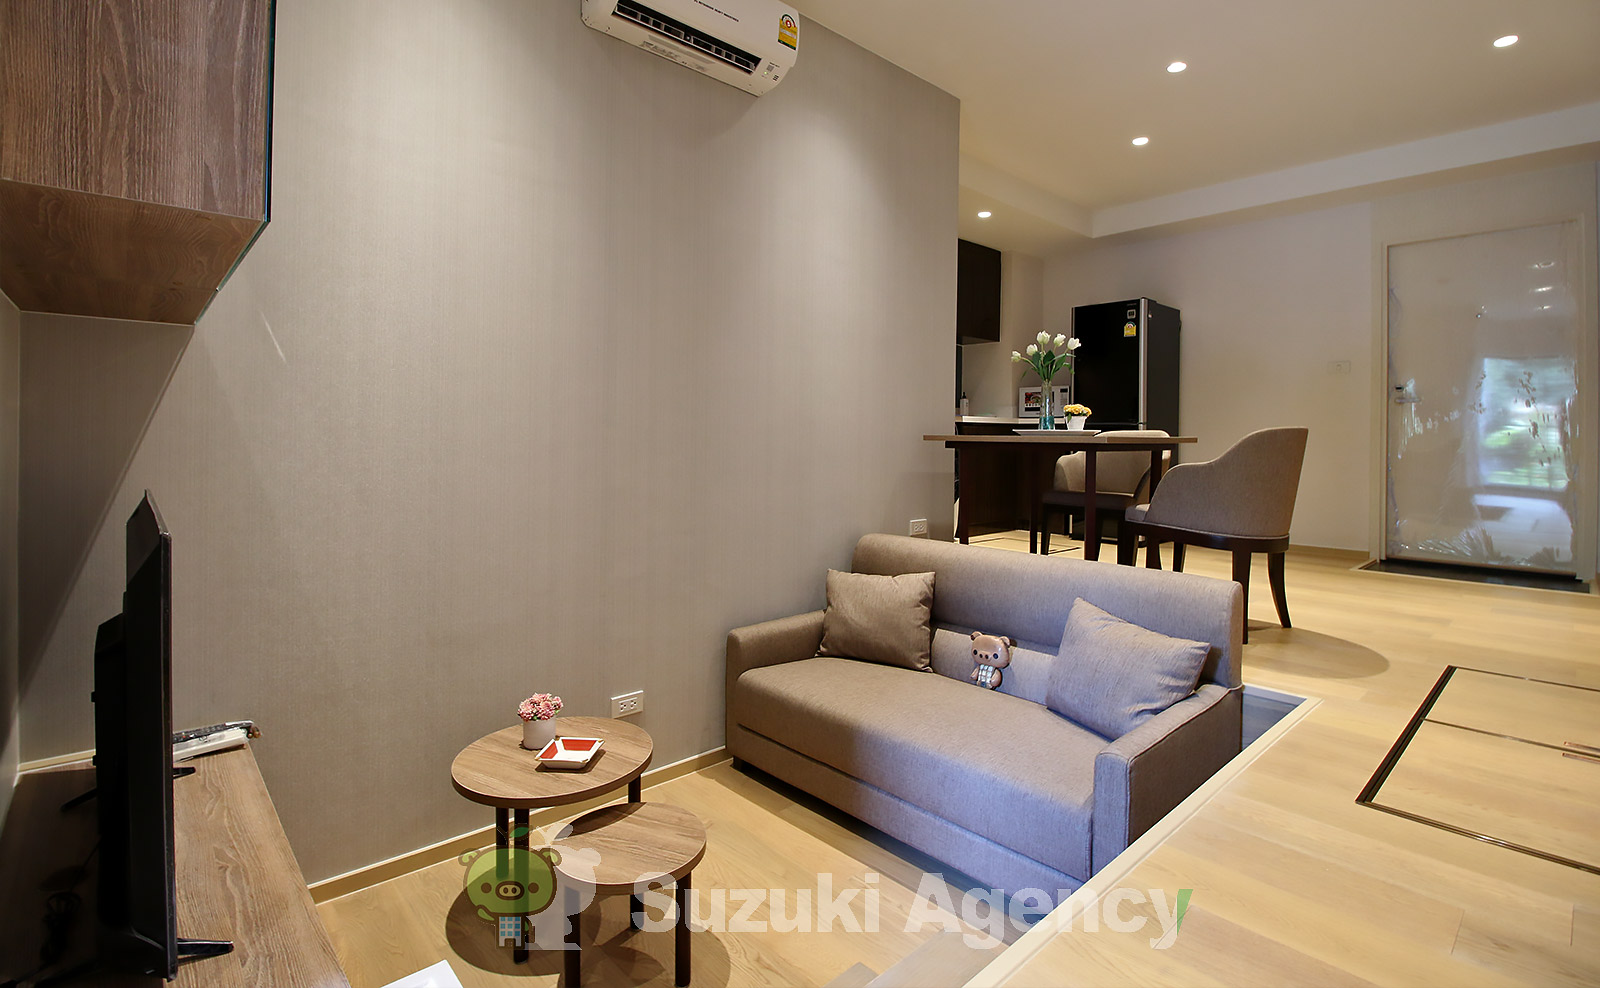 Runesu Thonglor 5:1Bed Room Photos No.3